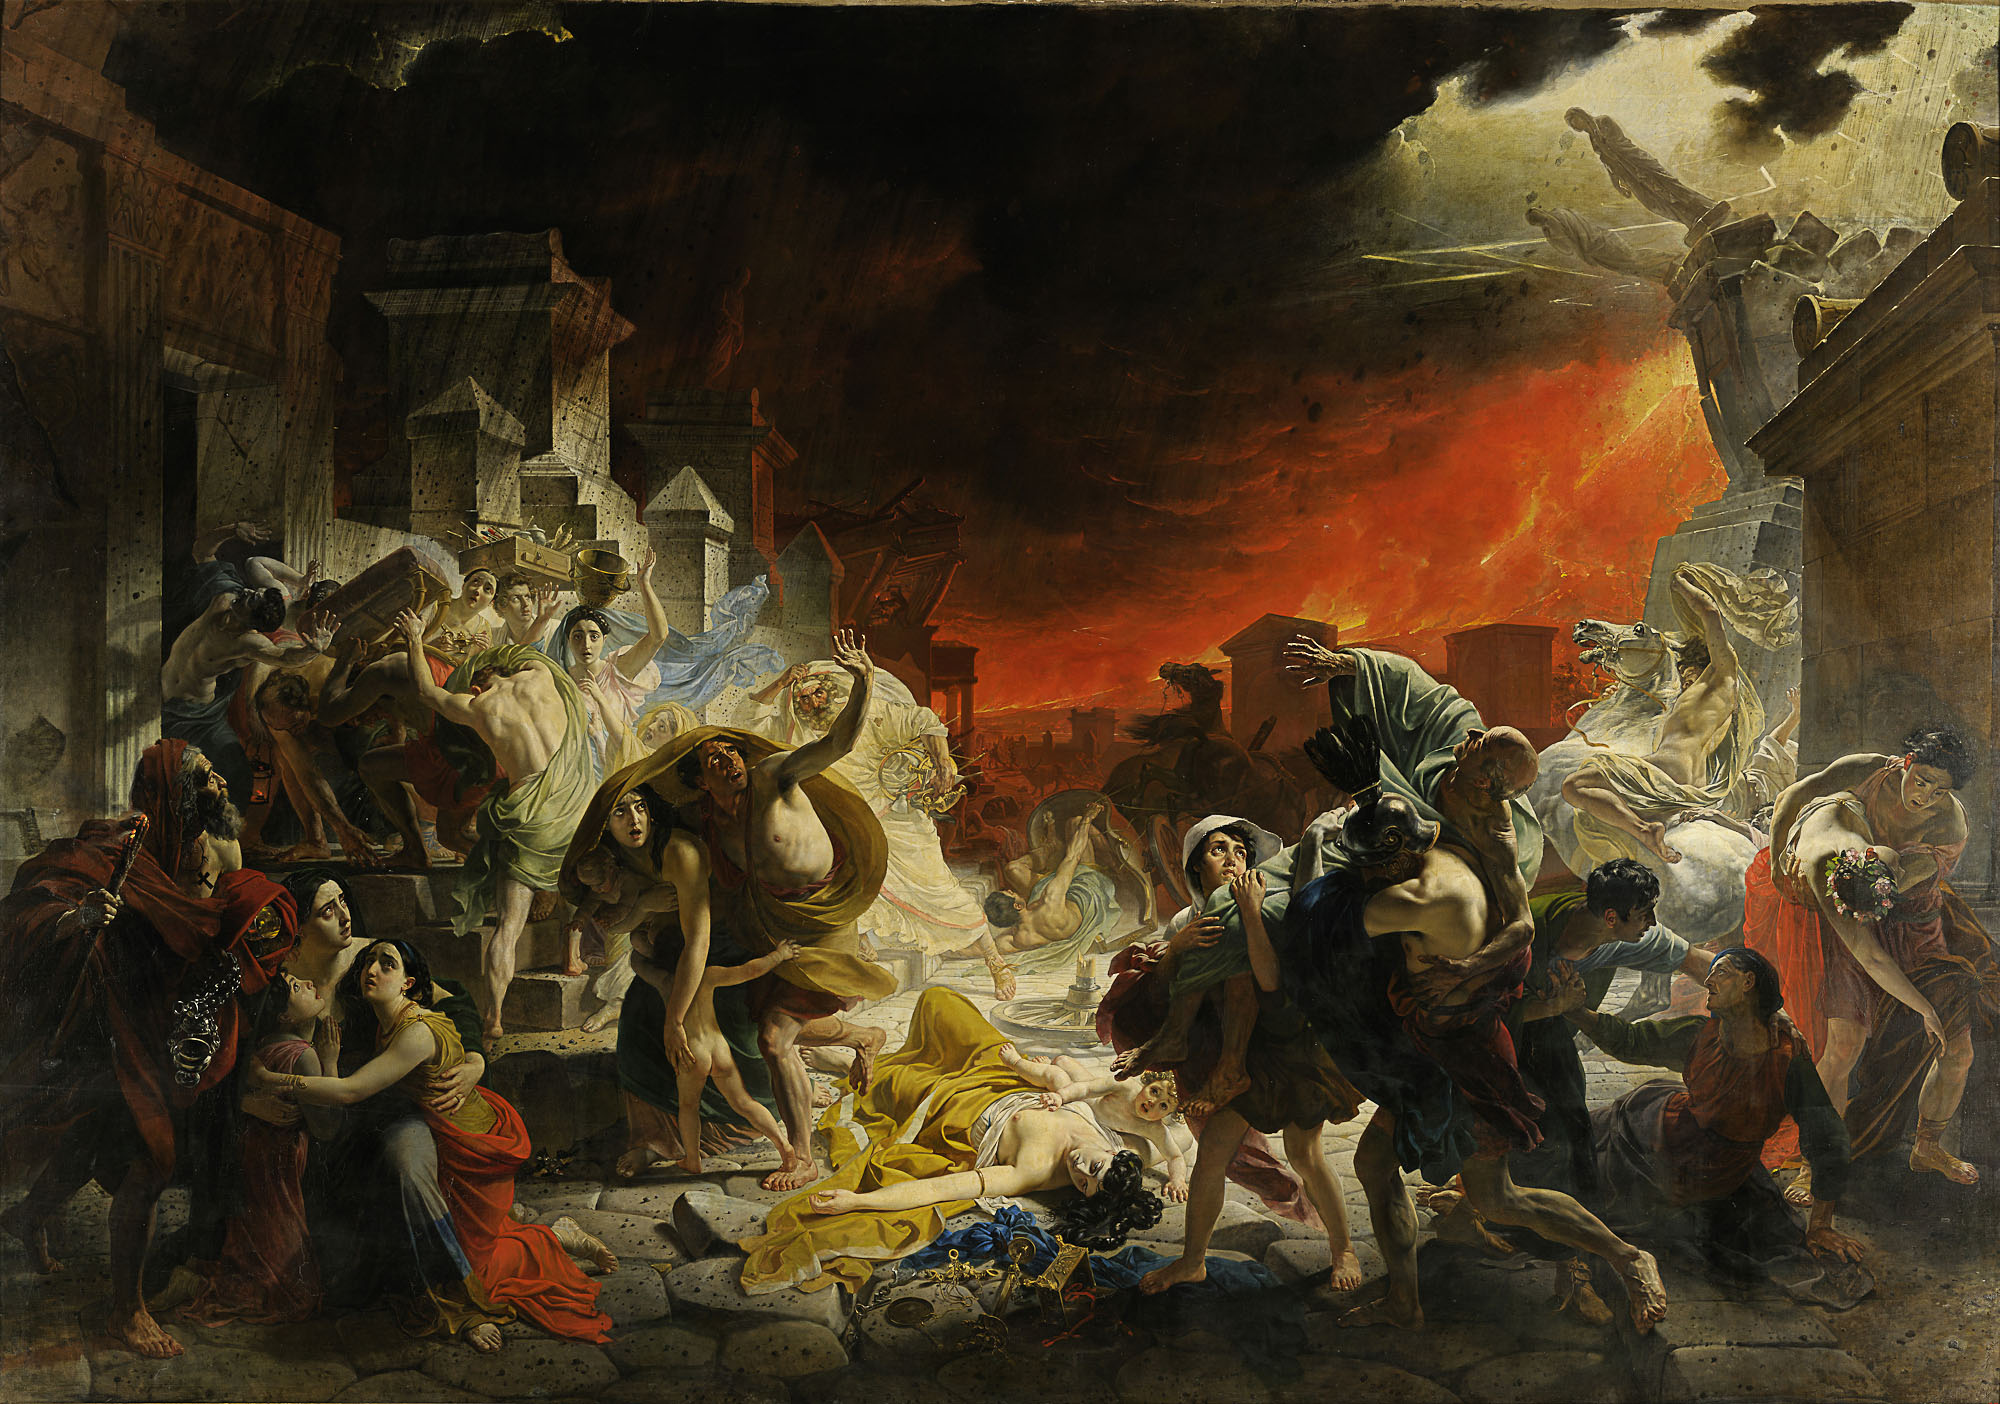 The Last Day of Pompeii by Karl Briullov